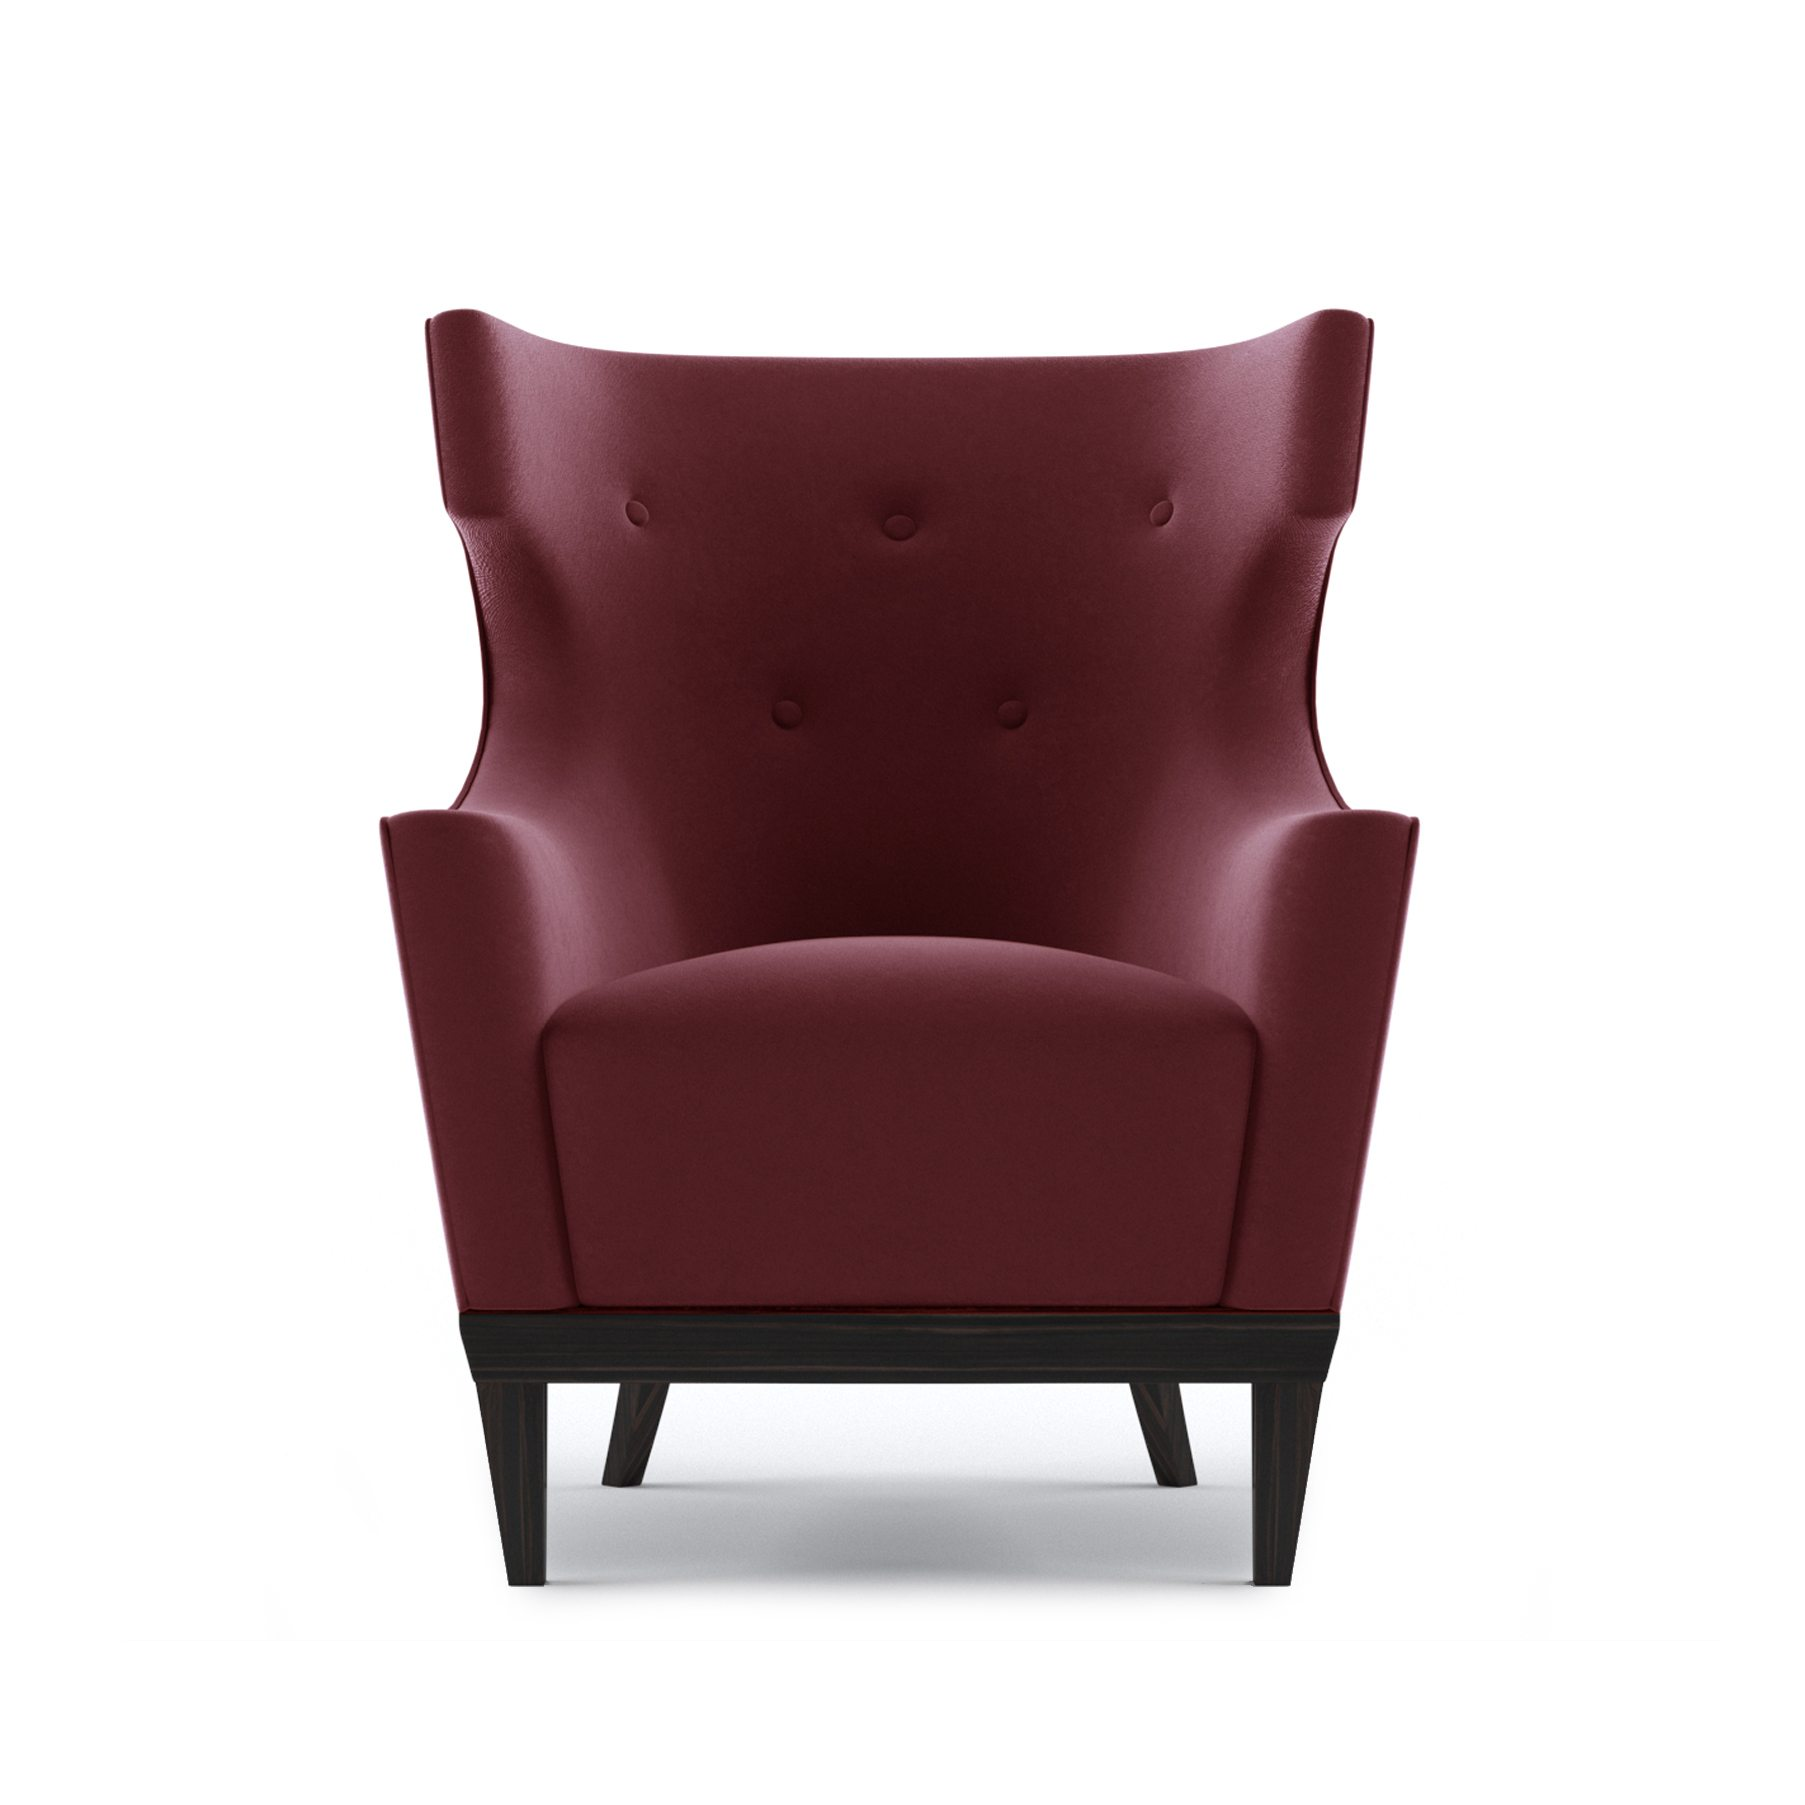 Kington Lounge Chair by Bonham & Bonham